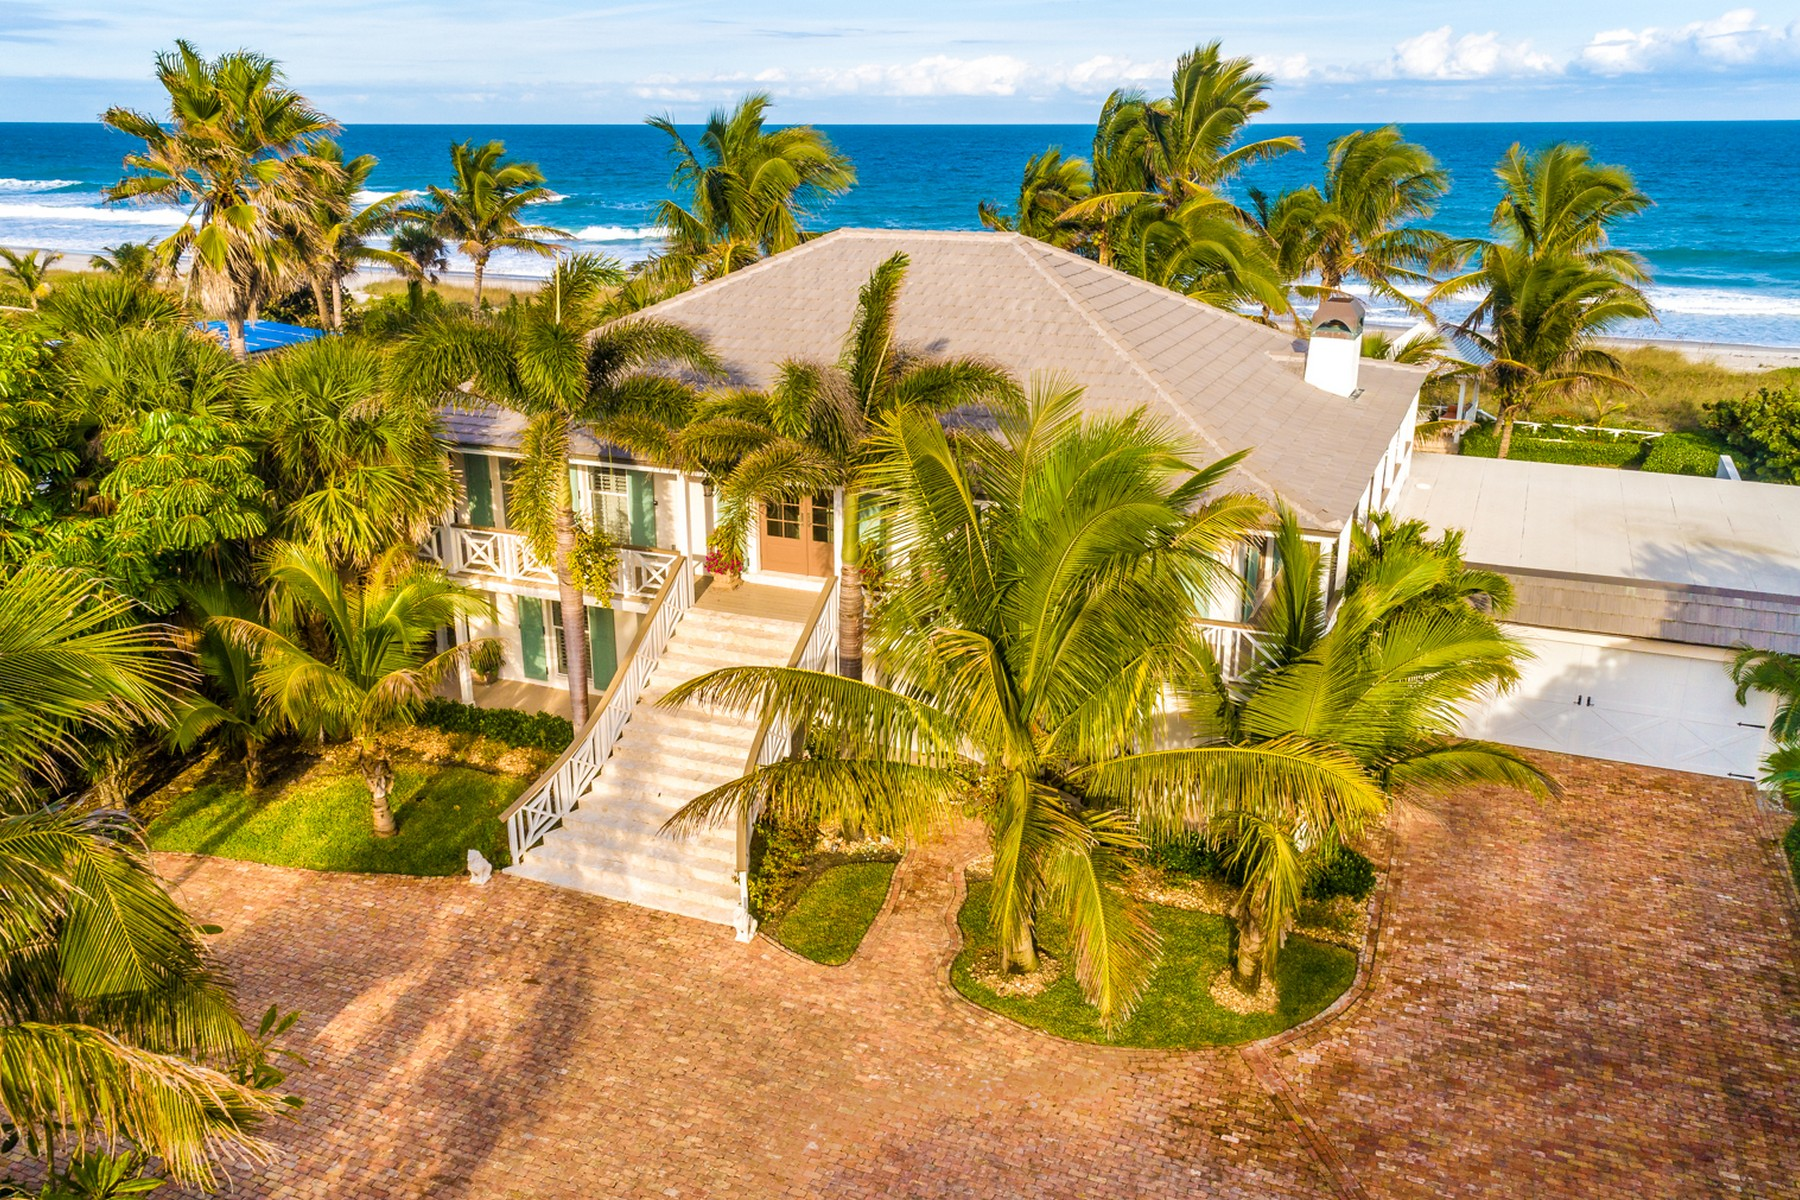 Casa Unifamiliar por un Venta en Beautiful Oceanfront estate property in rarely available Indialantic by the Sea. 1517 S Miramar Avenue Indialantic, Florida 32903 Estados Unidos